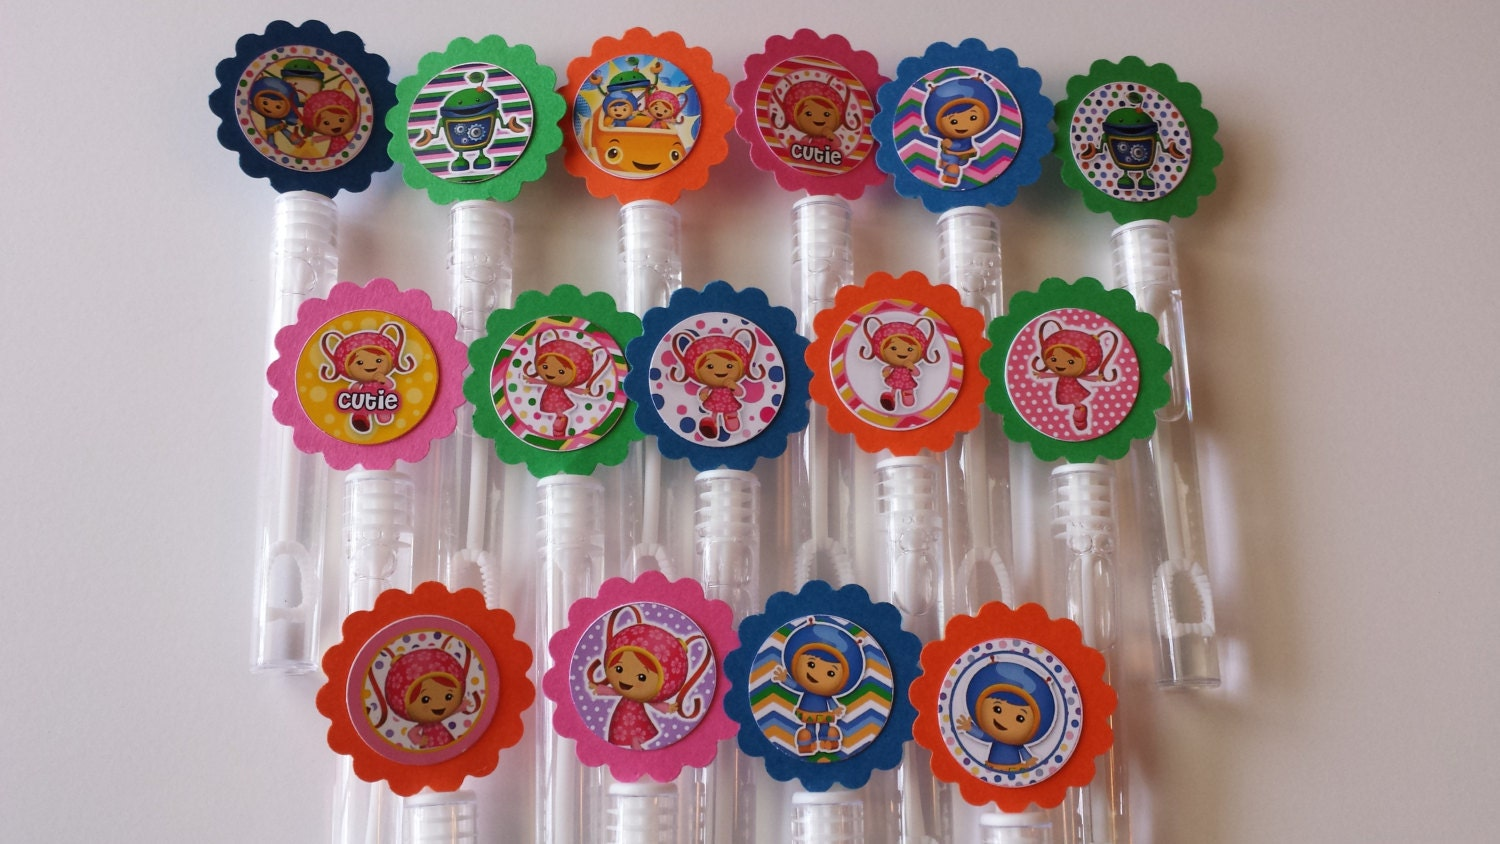 Team umizoomi mini bubble wands birthday party favors set of for Mini bubble wands